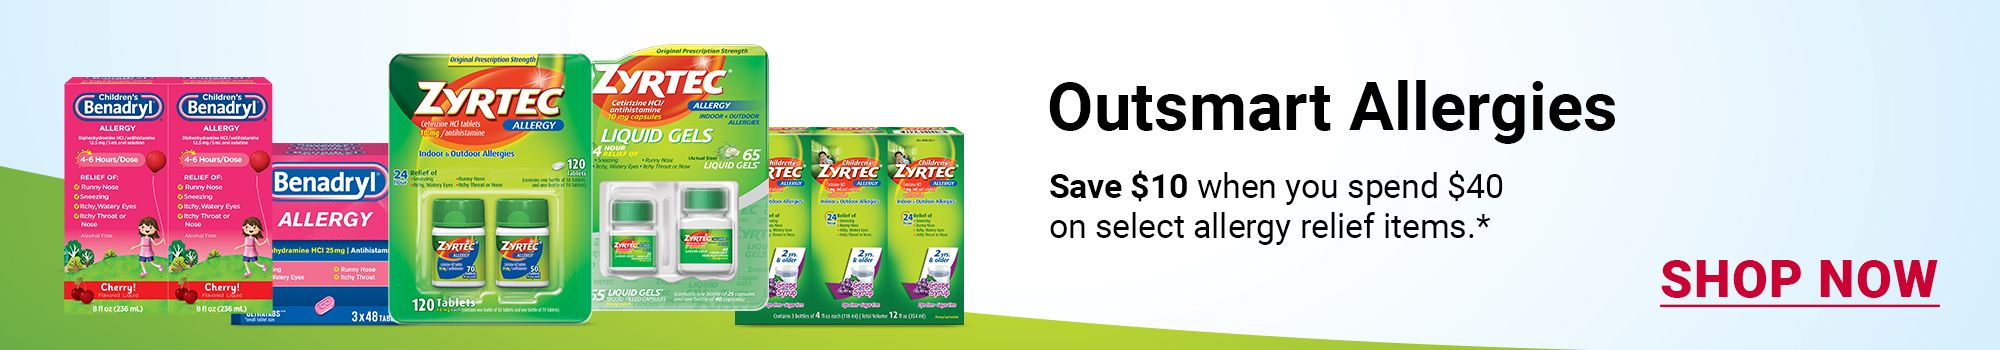 Save $10 instantly when you spend $40 on select allergy relief items.